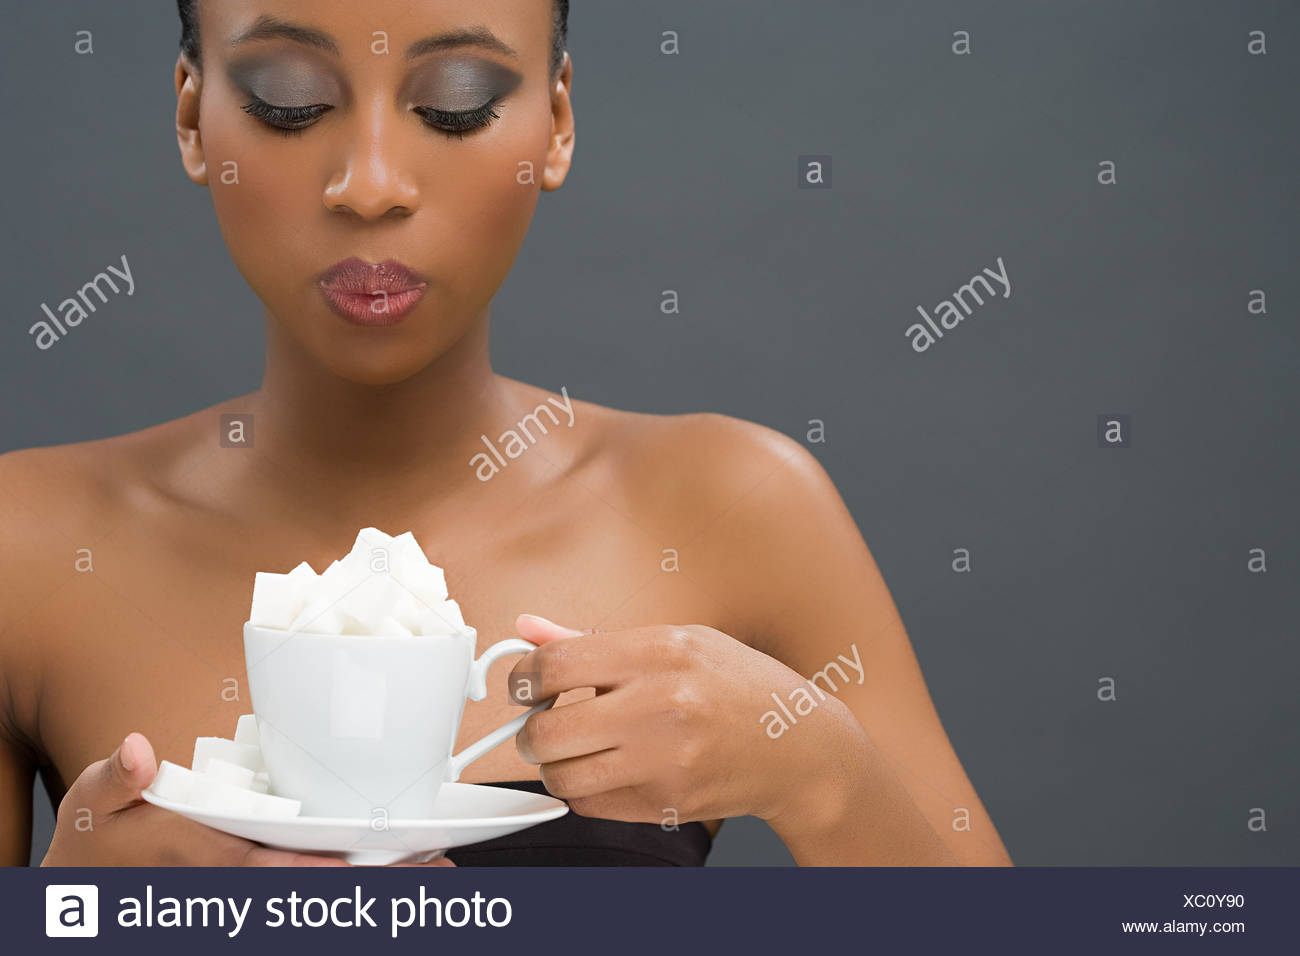 Woman holding a cup of sugar lumps - Stock Image